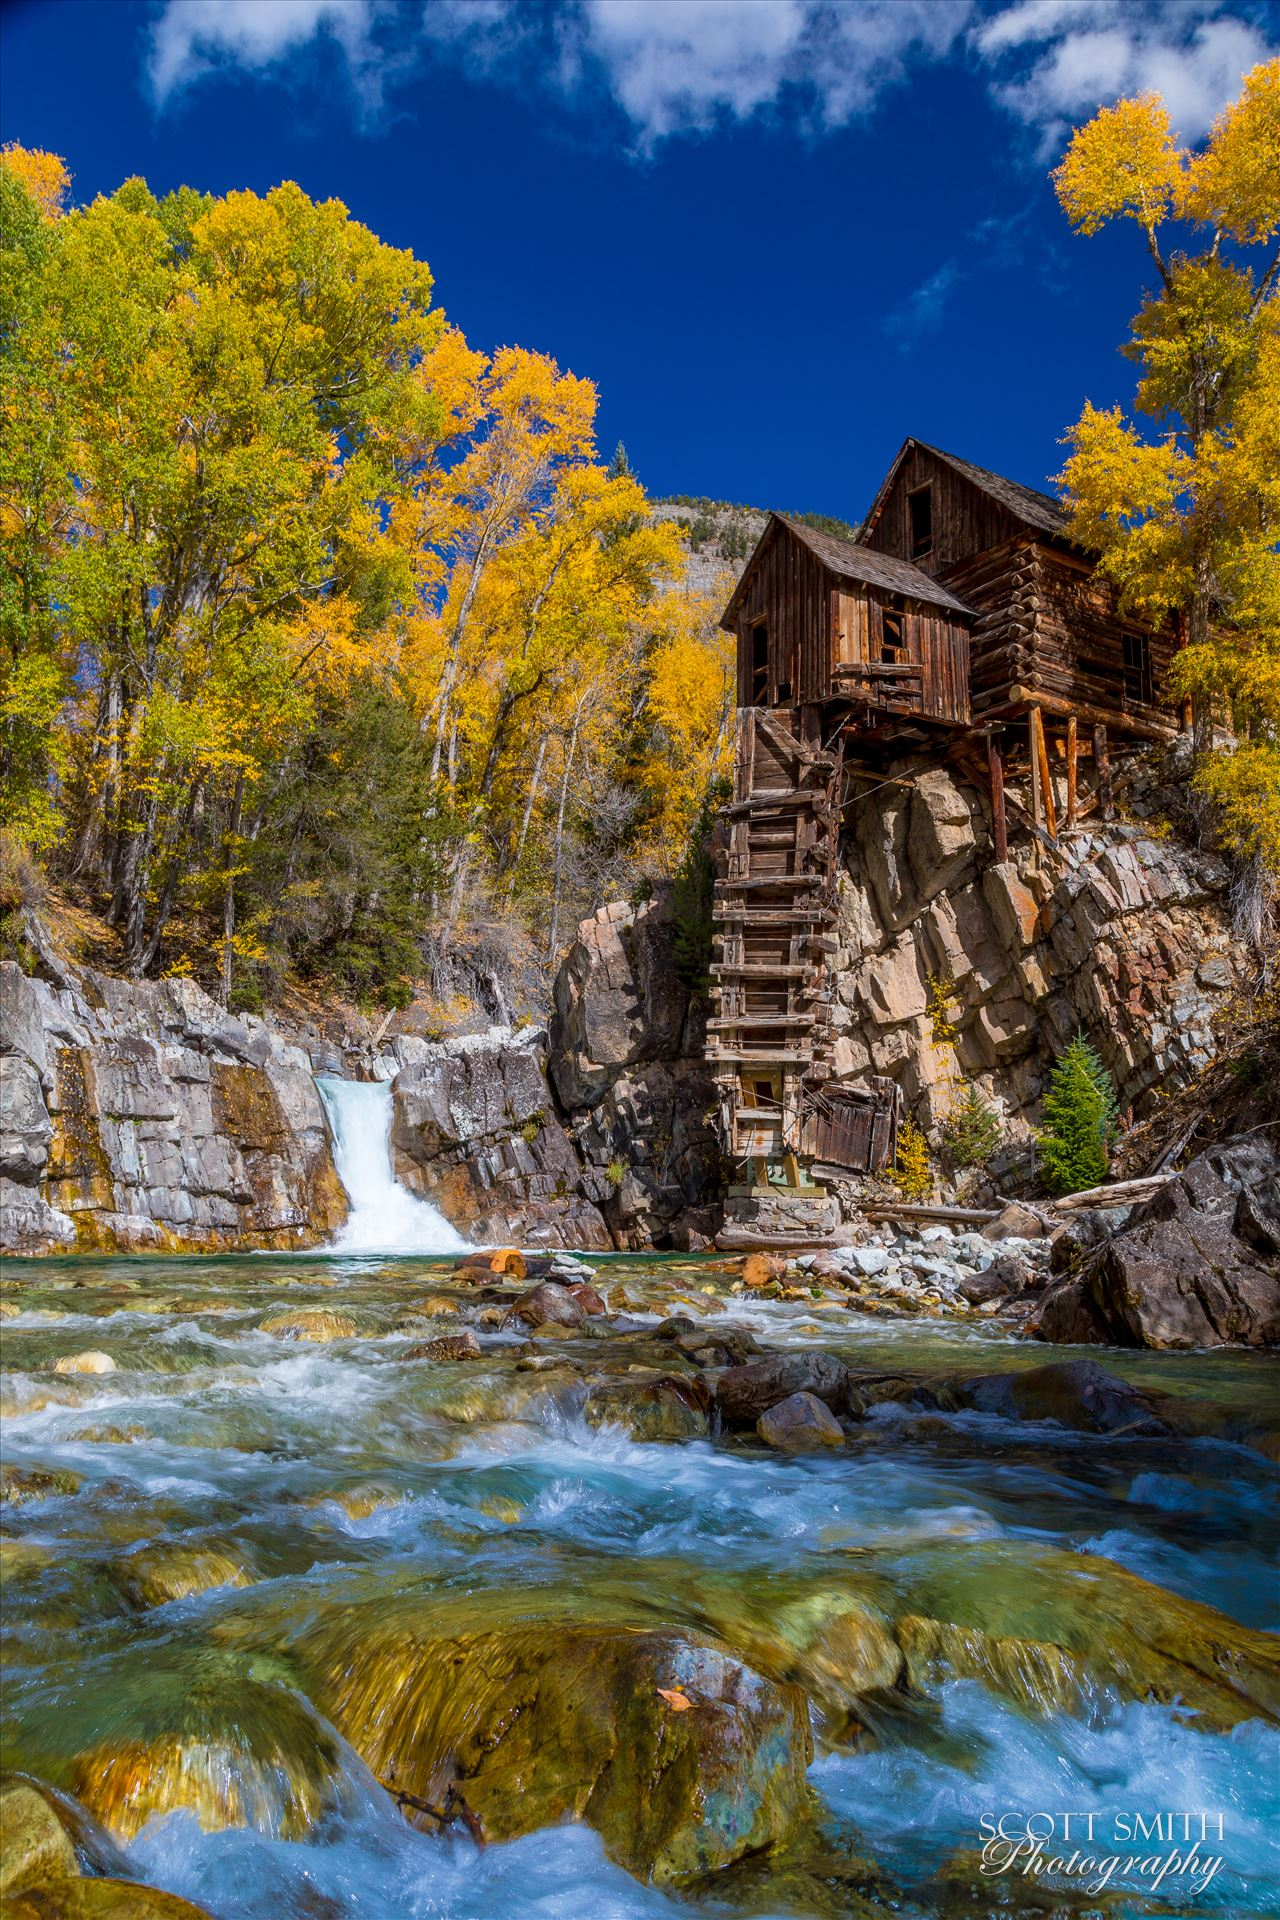 Crystal Mill, Colorado 04 - The Crystal Mill, or the Old Mill is an 1892 wooden powerhouse located on an outcrop above the Crystal River in Crystal, Colorado by Scott Smith Photos